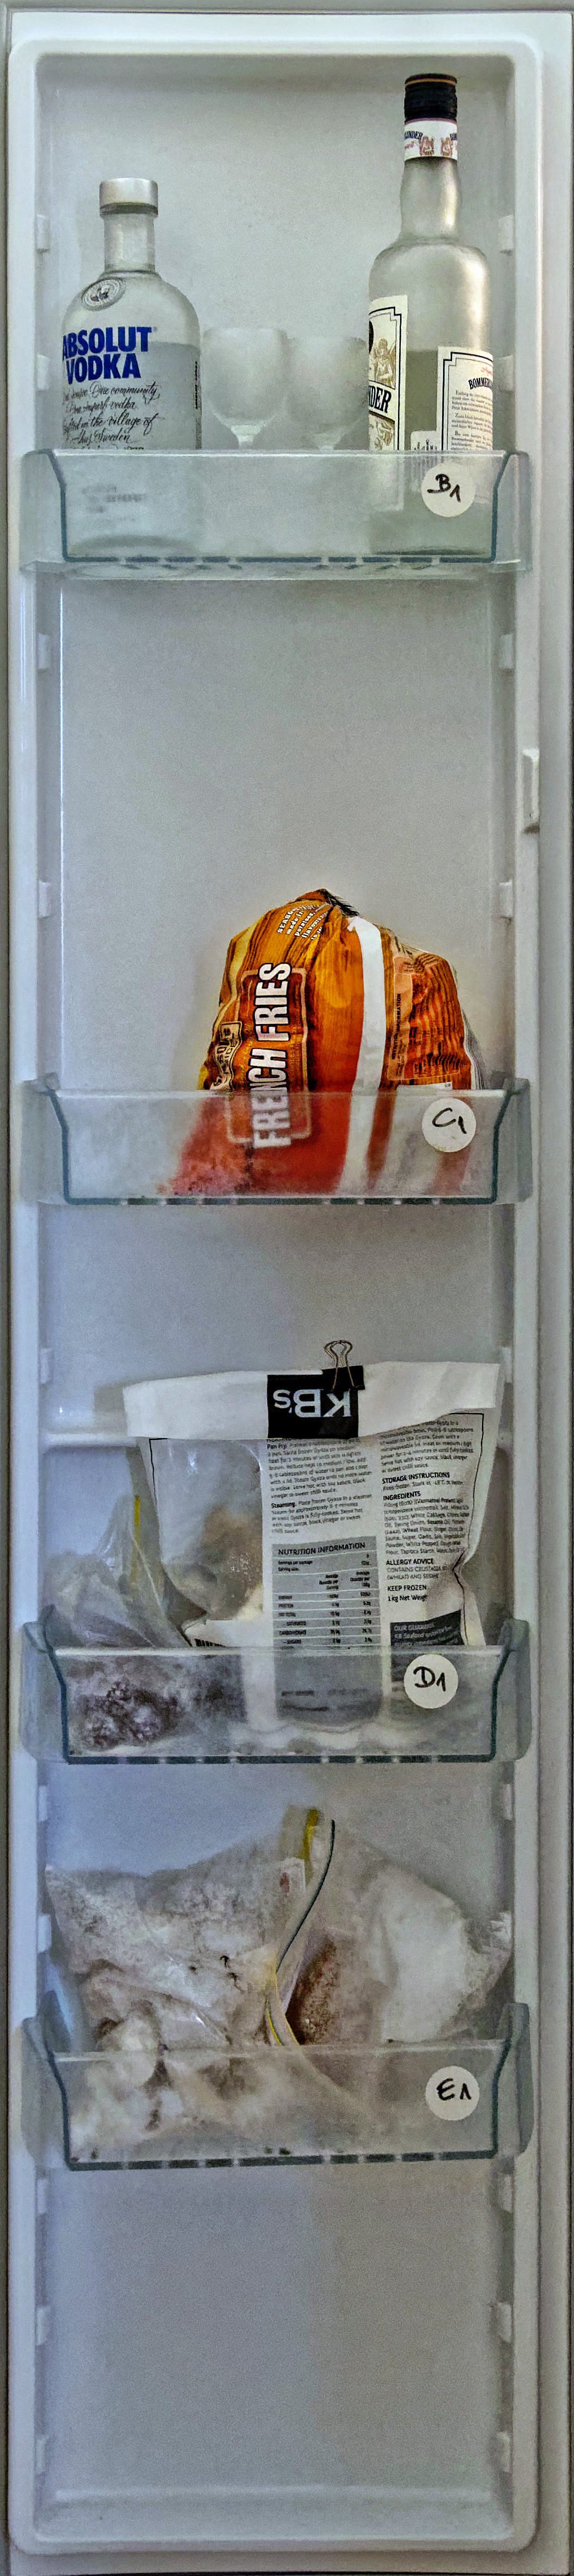 Old-fridge-2.jpeg